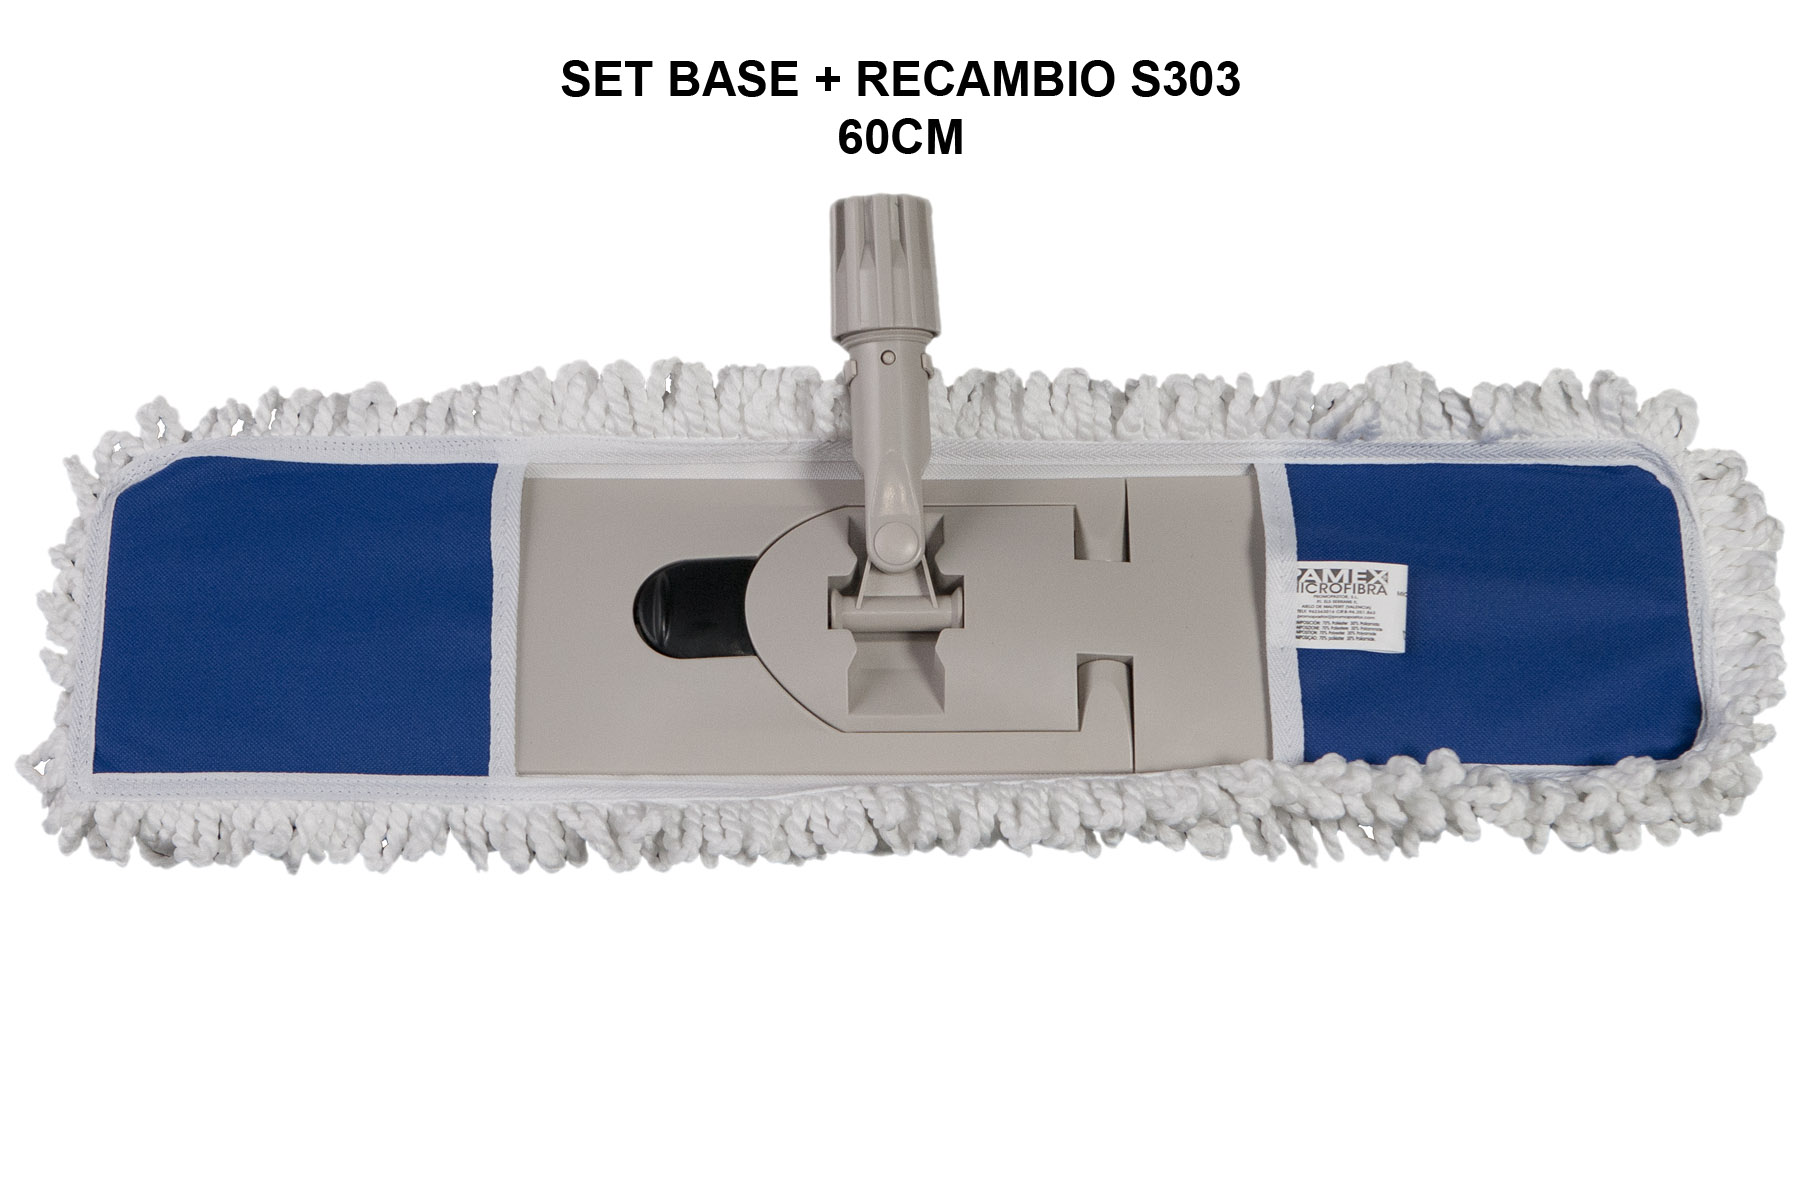 SET BASE + RECAMBIO S303 60CM